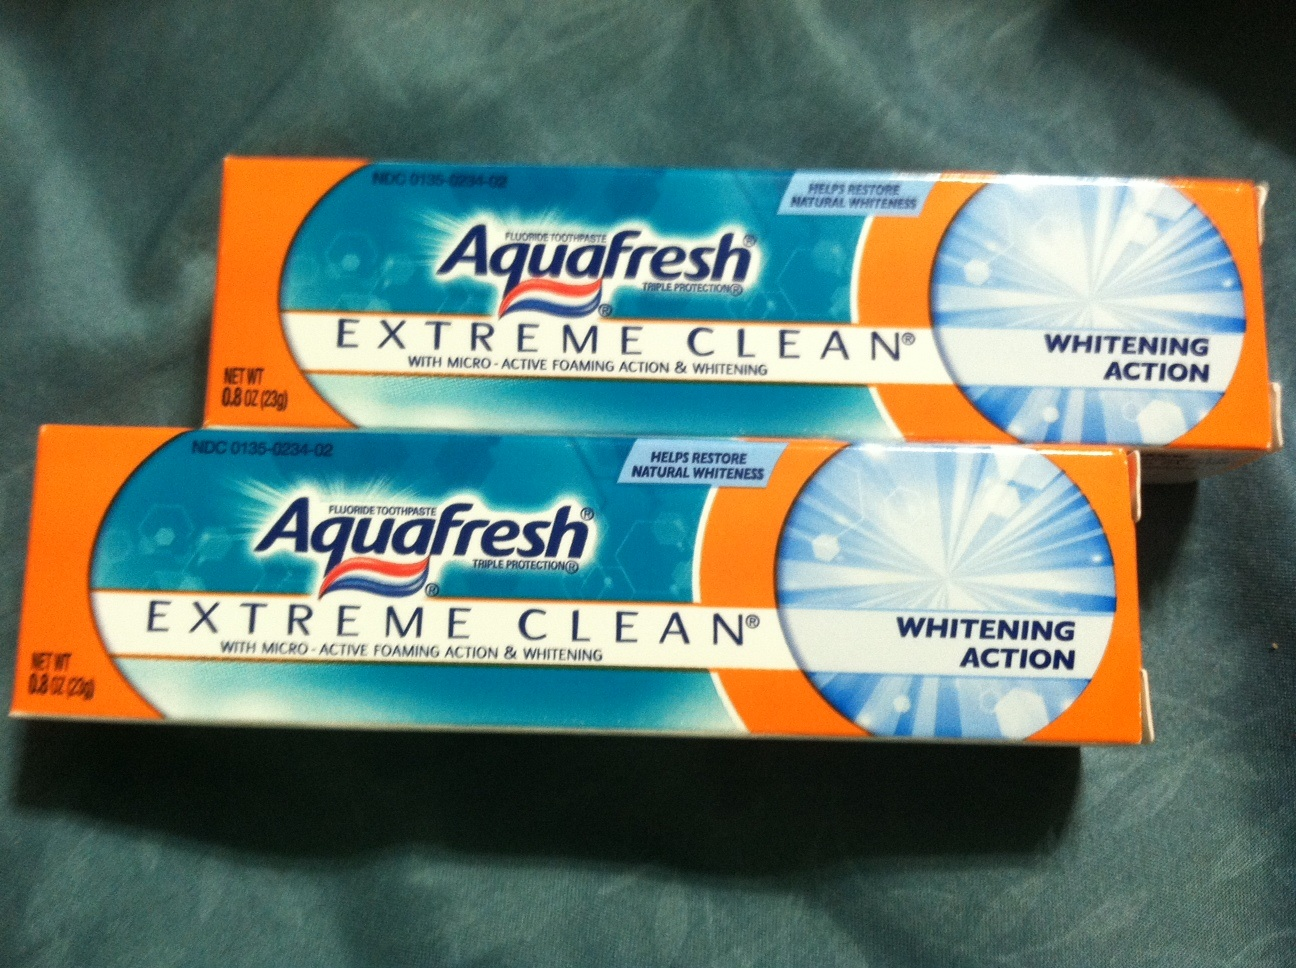 photo regarding Grocerysmarts.com Printable Grocery Planner named Outrageous Jackie: No cost Aquafresh Toothpaste: Connection towards Printable Coupon